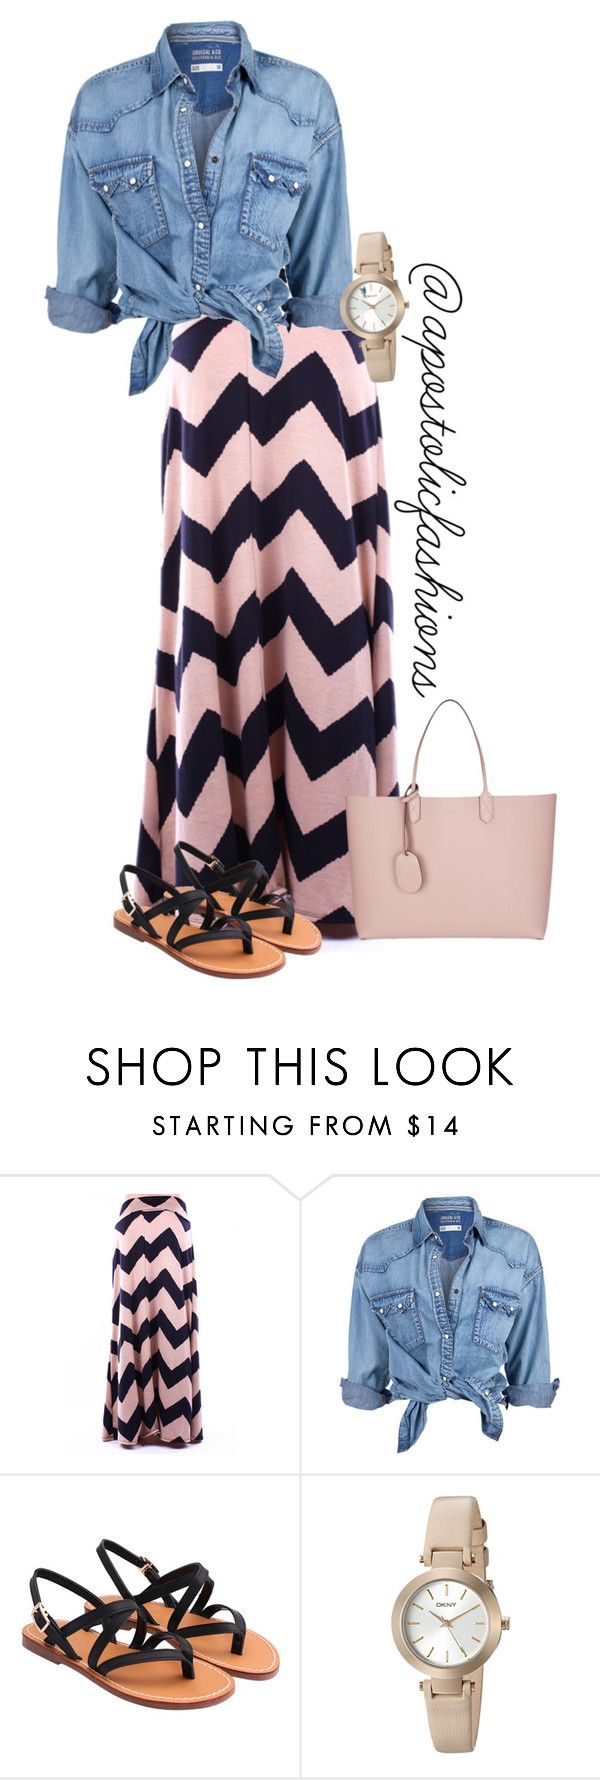 """Apostolic Fashions #1290"" by apostolicfashions on Polyvore featuring Soul Cal, DKNY and Gucci"